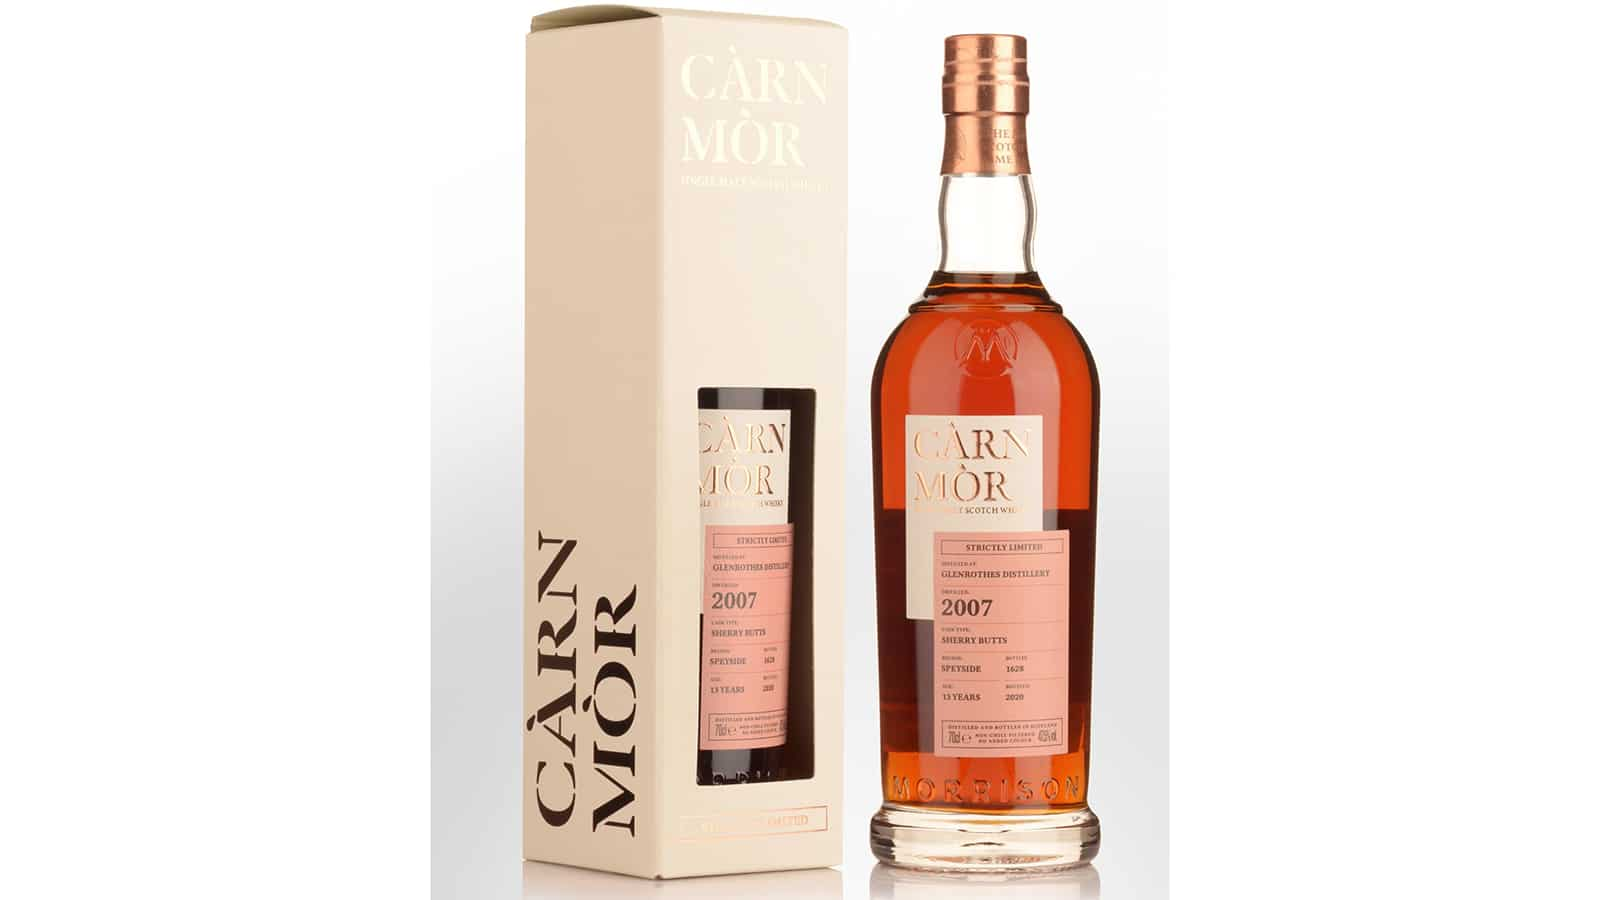 Glenrothes 2007-2020 13yo Carn Mor Strictly Limited